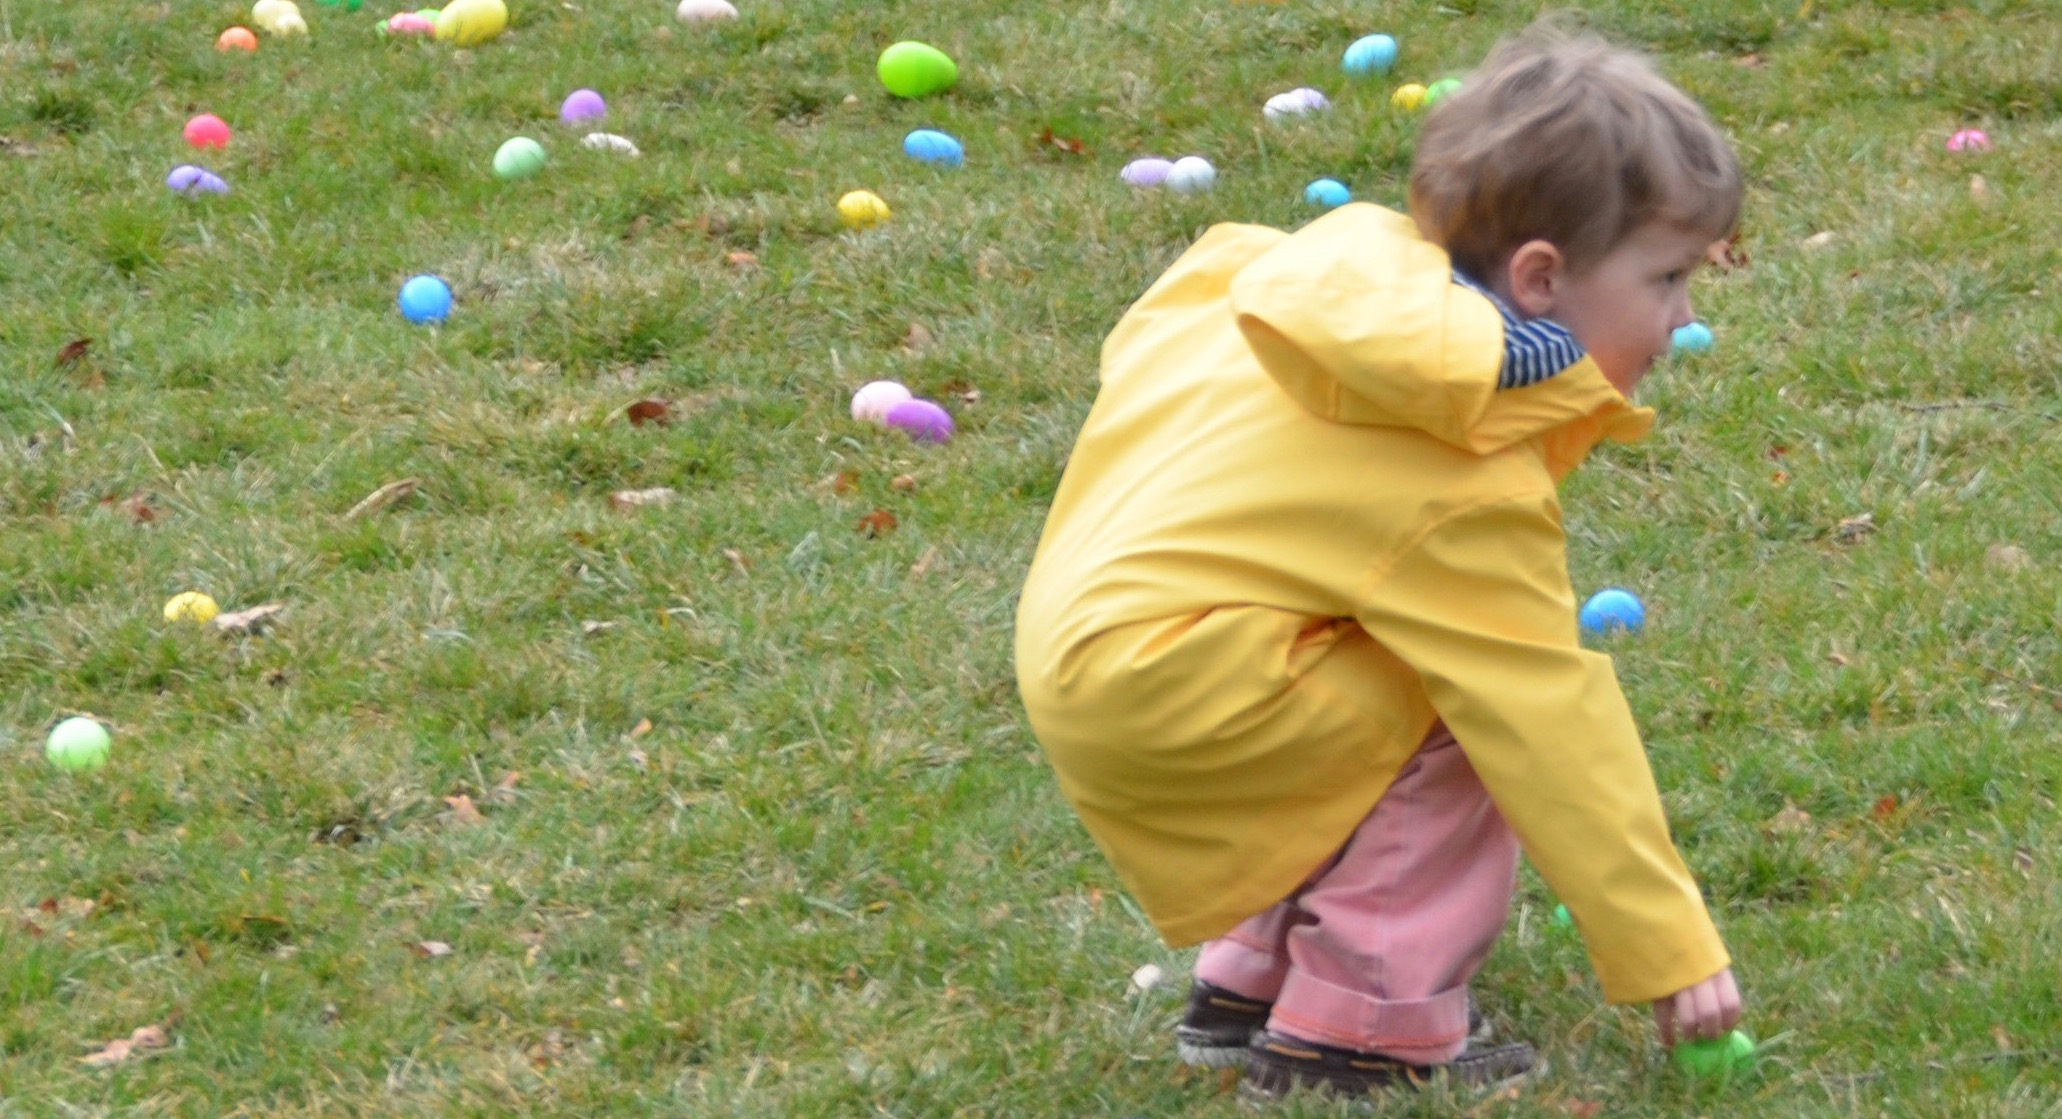 Egg hunt photo